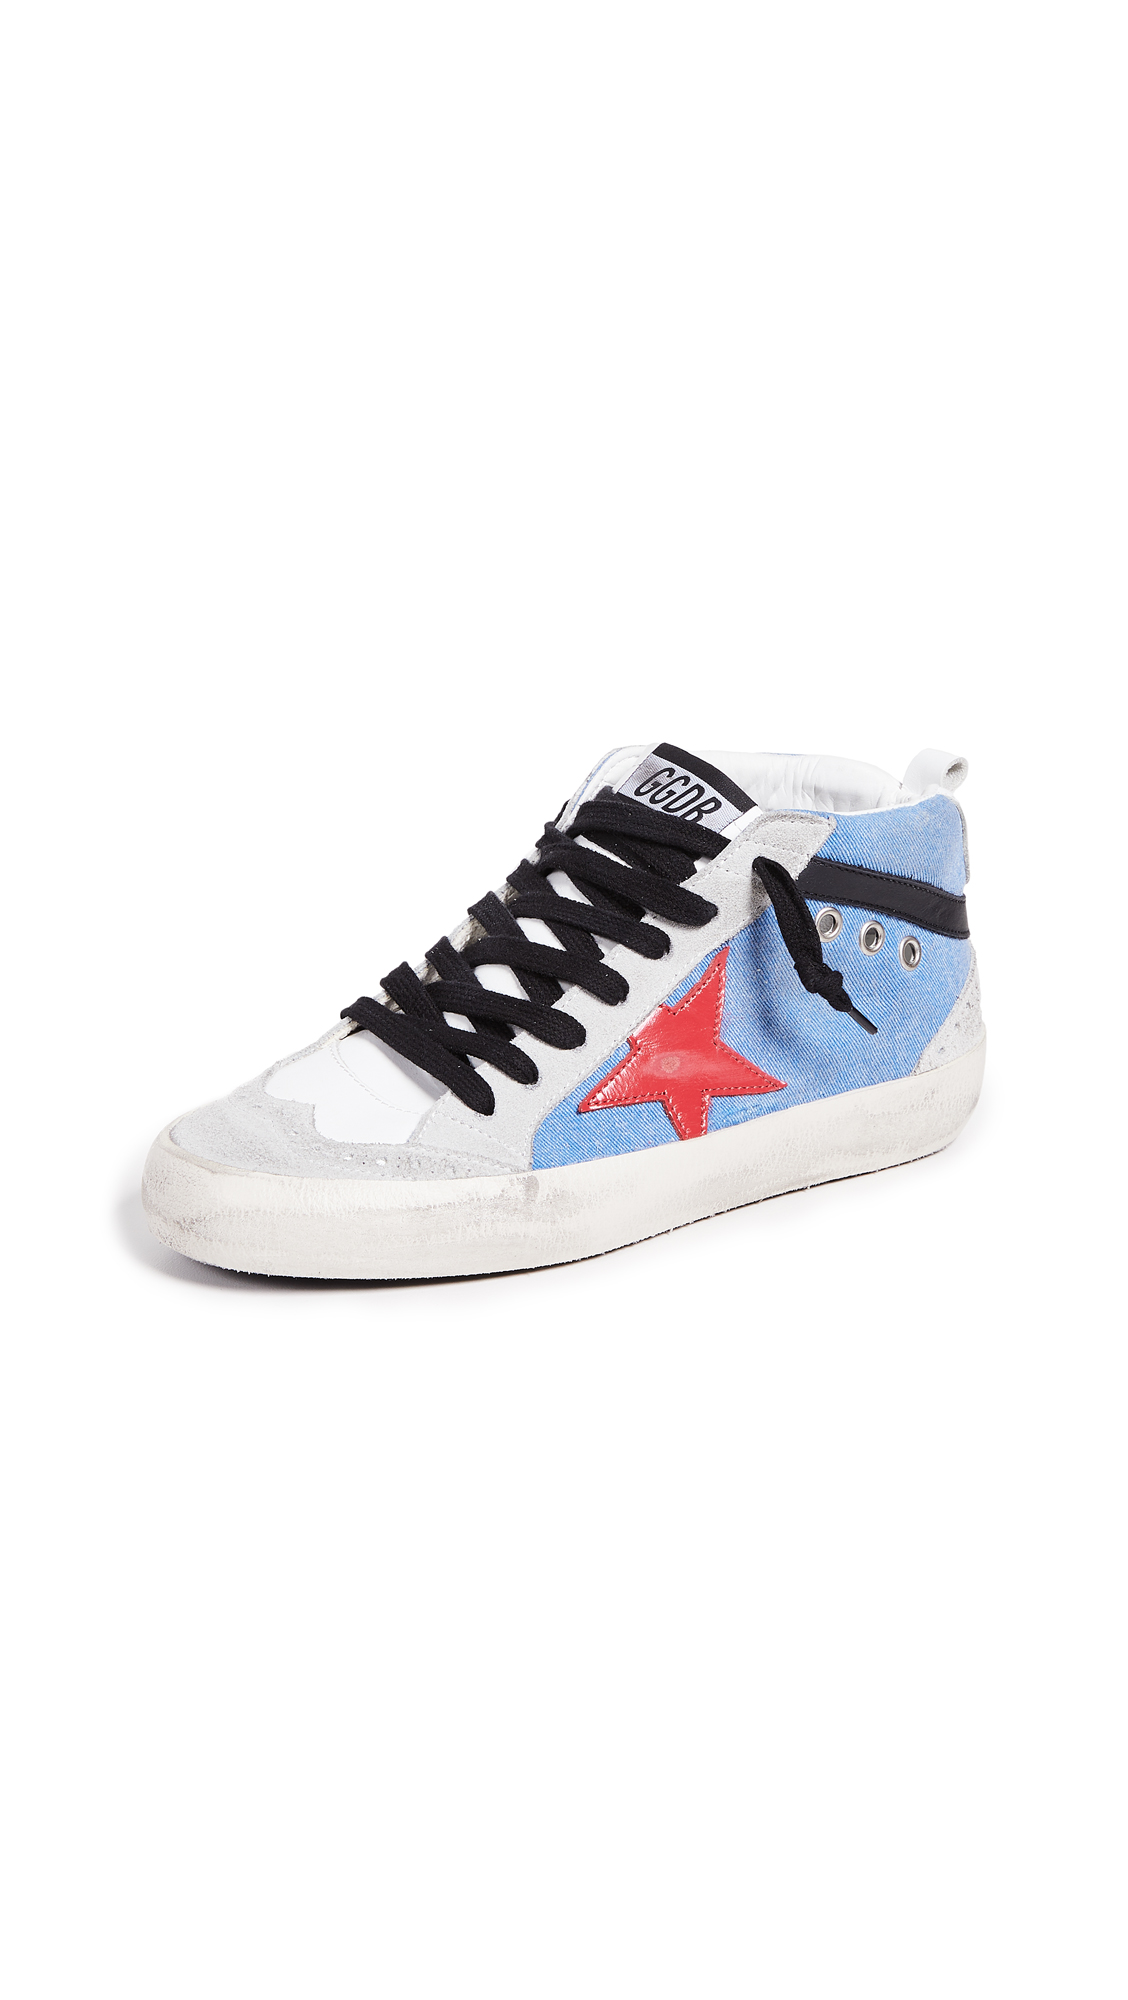 Golden Goose Mid Star Sneakers - Light Blue/Ice/Red